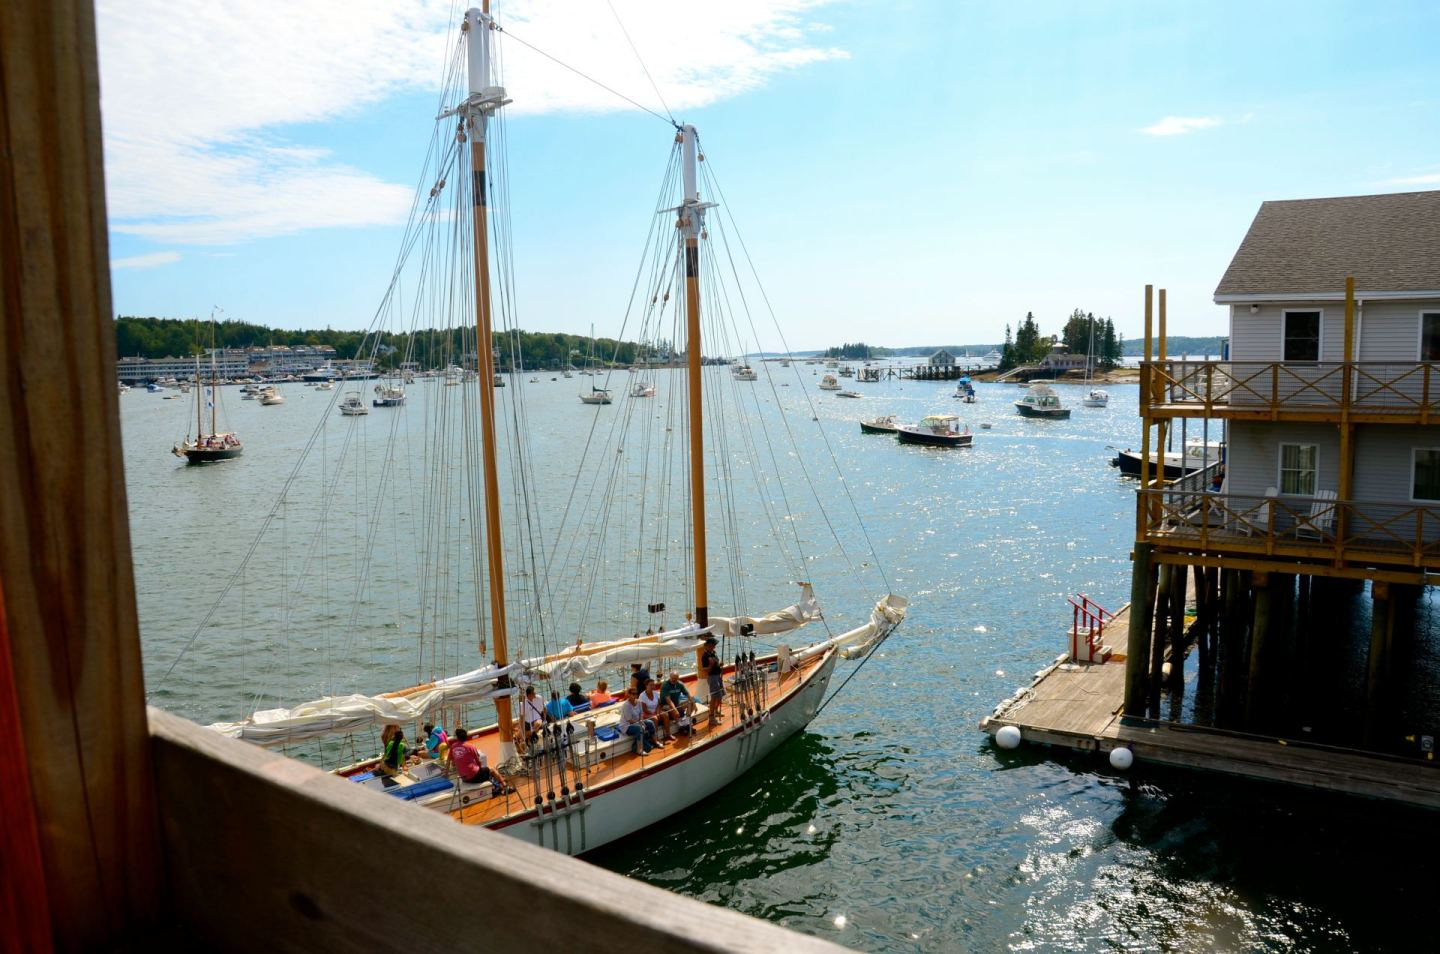 A Jaunt Through Boothbay Harbor, Maine